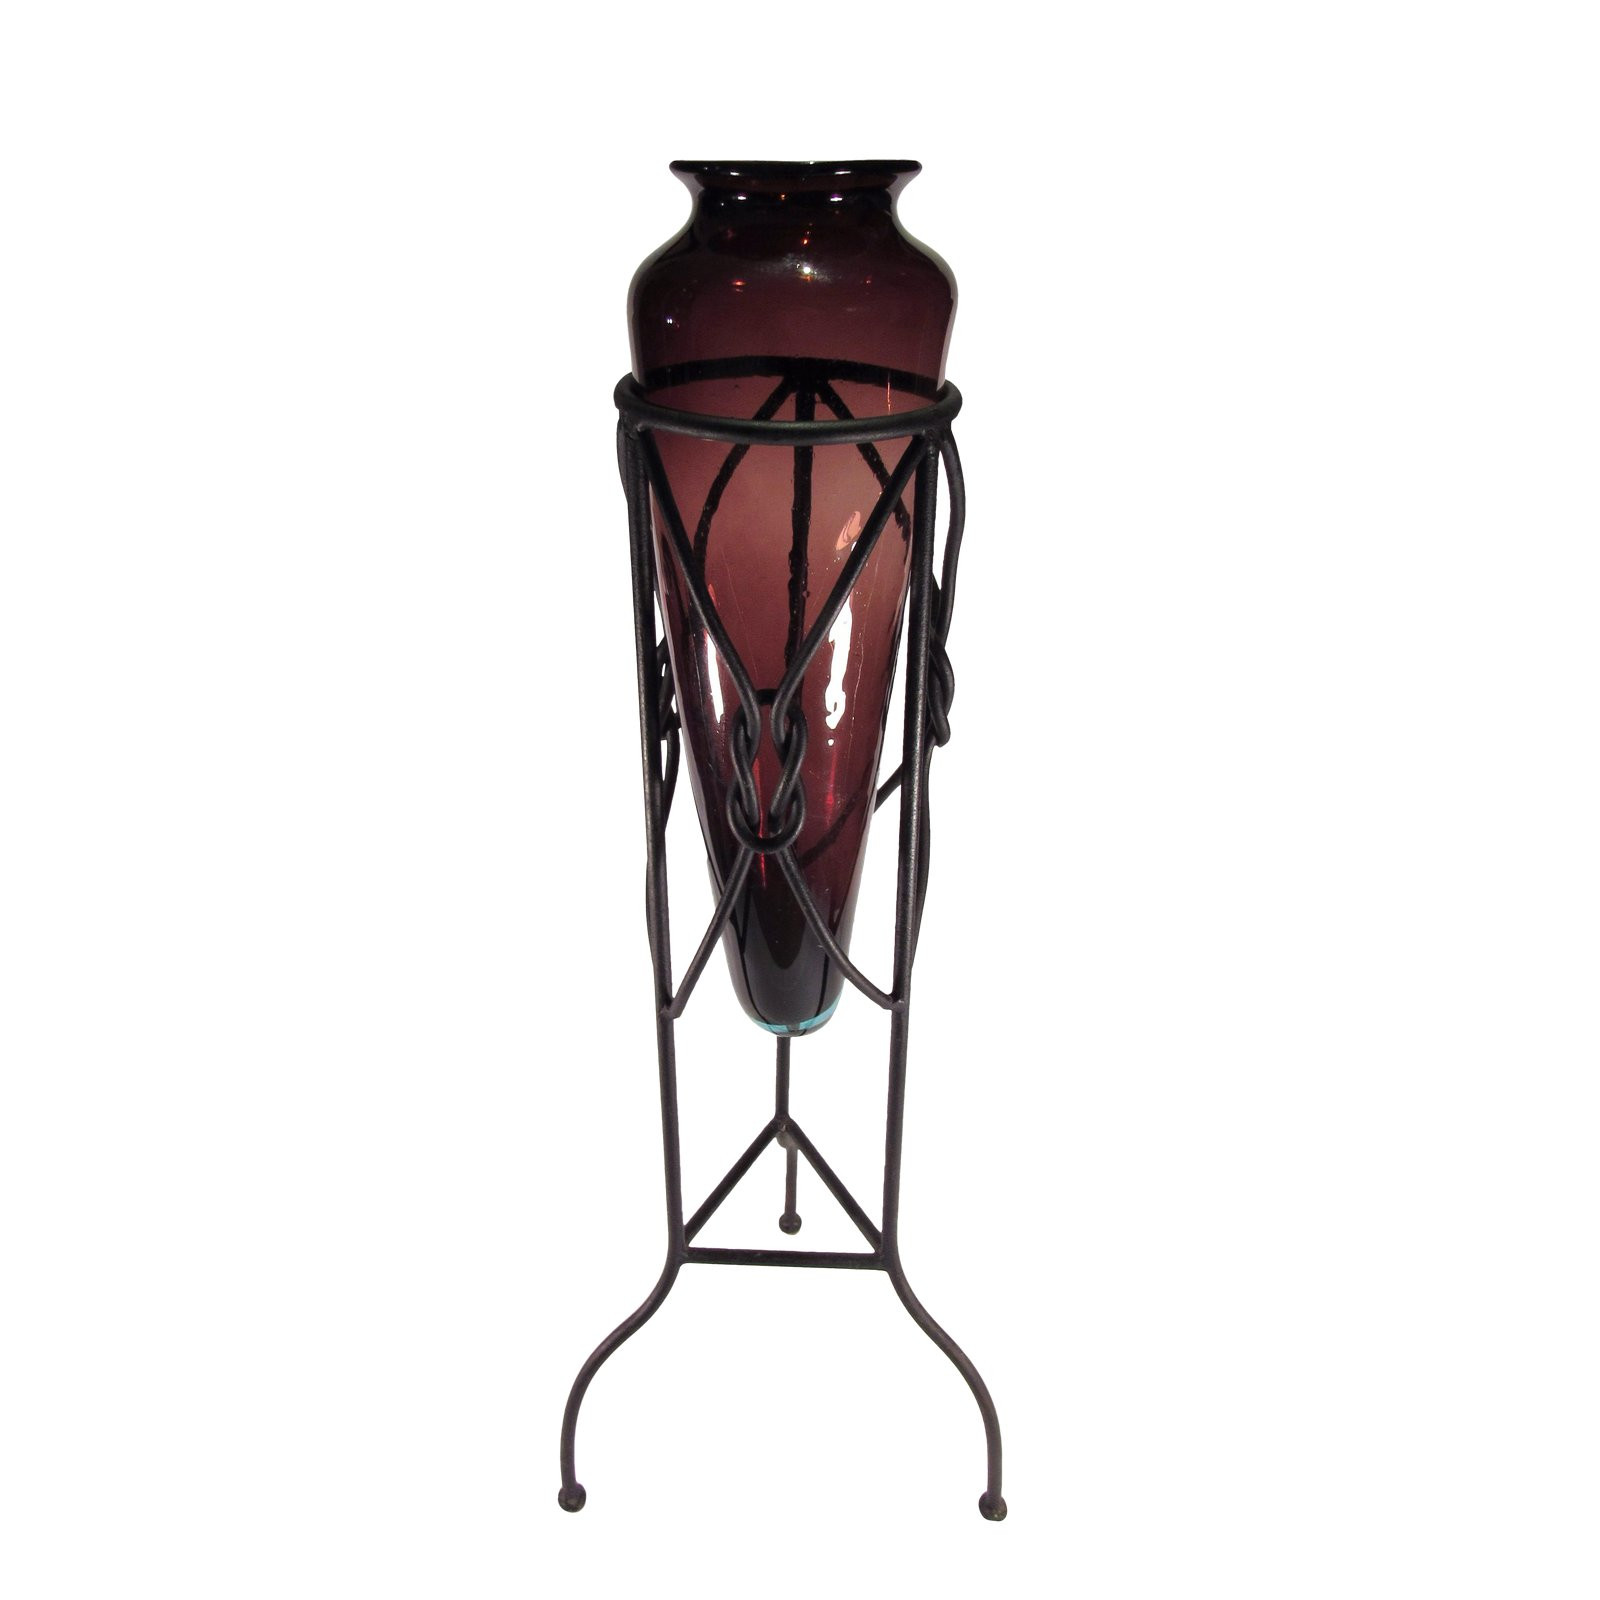 metal trumpet vases wholesale of large amphora style glass vase in iron tripod stand chairish in large amphora style glass vase in iron tripod stand 8677